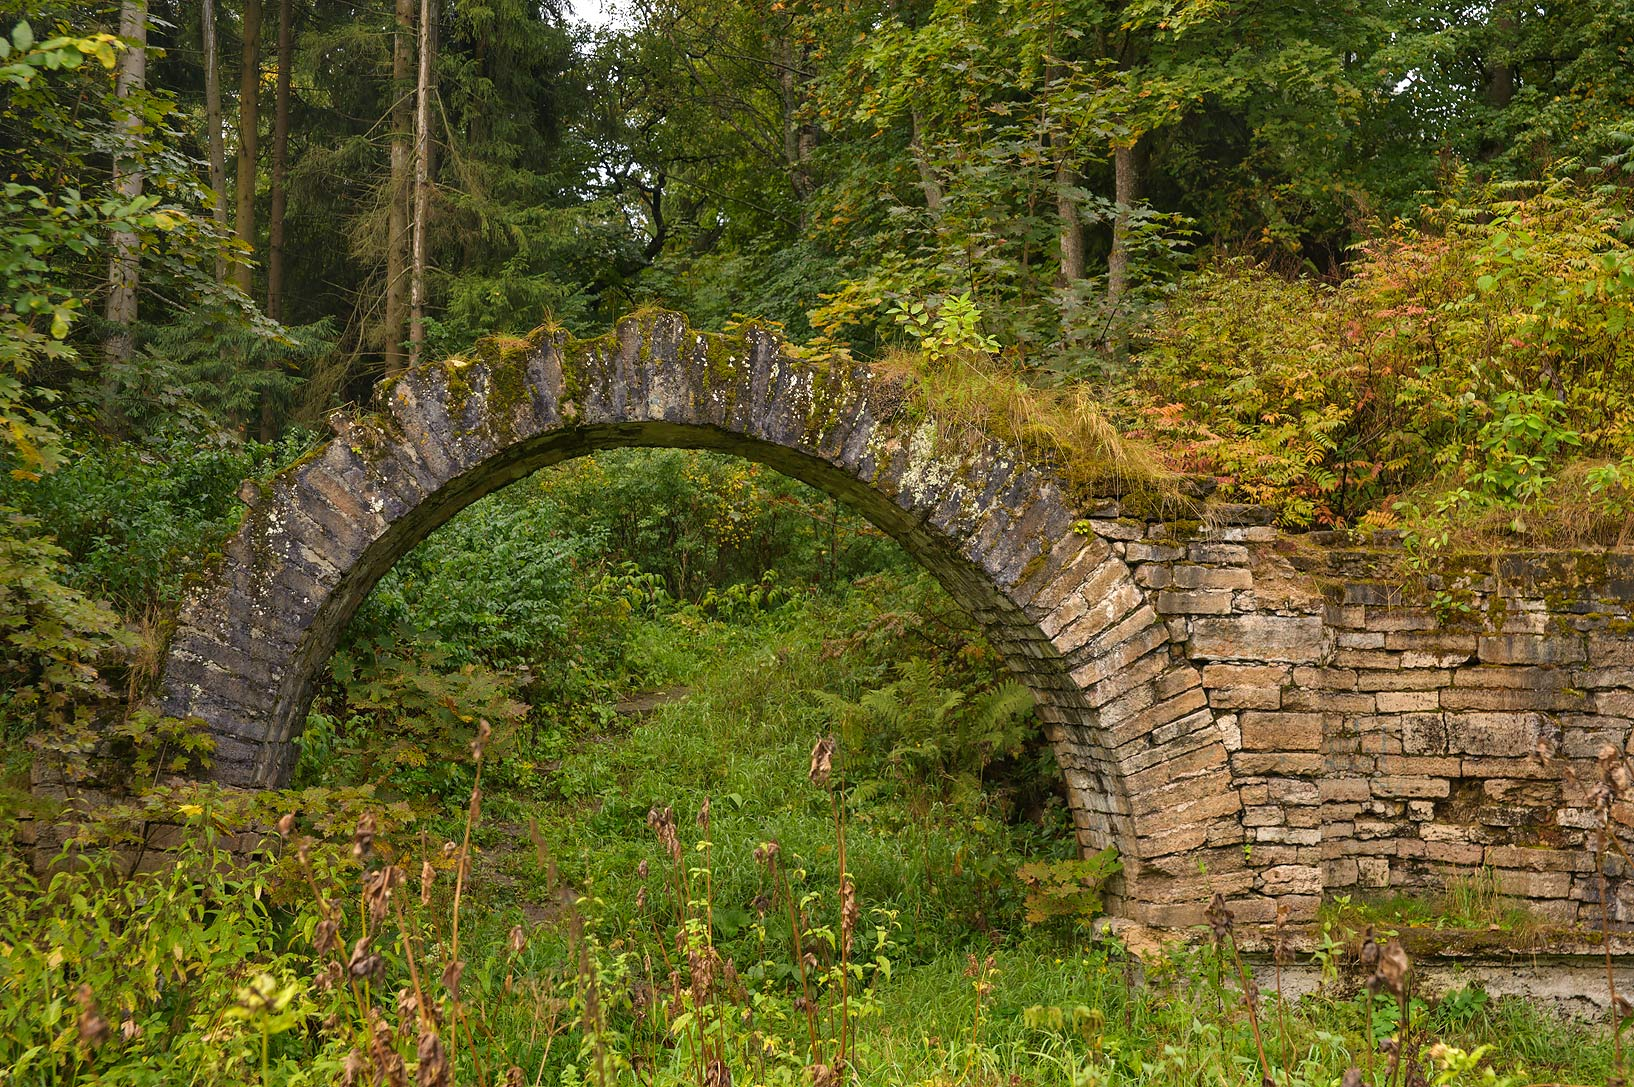 Stone arch near Elizavetin Pavilion one mile from...a suburb of St.Petersburg, Russia